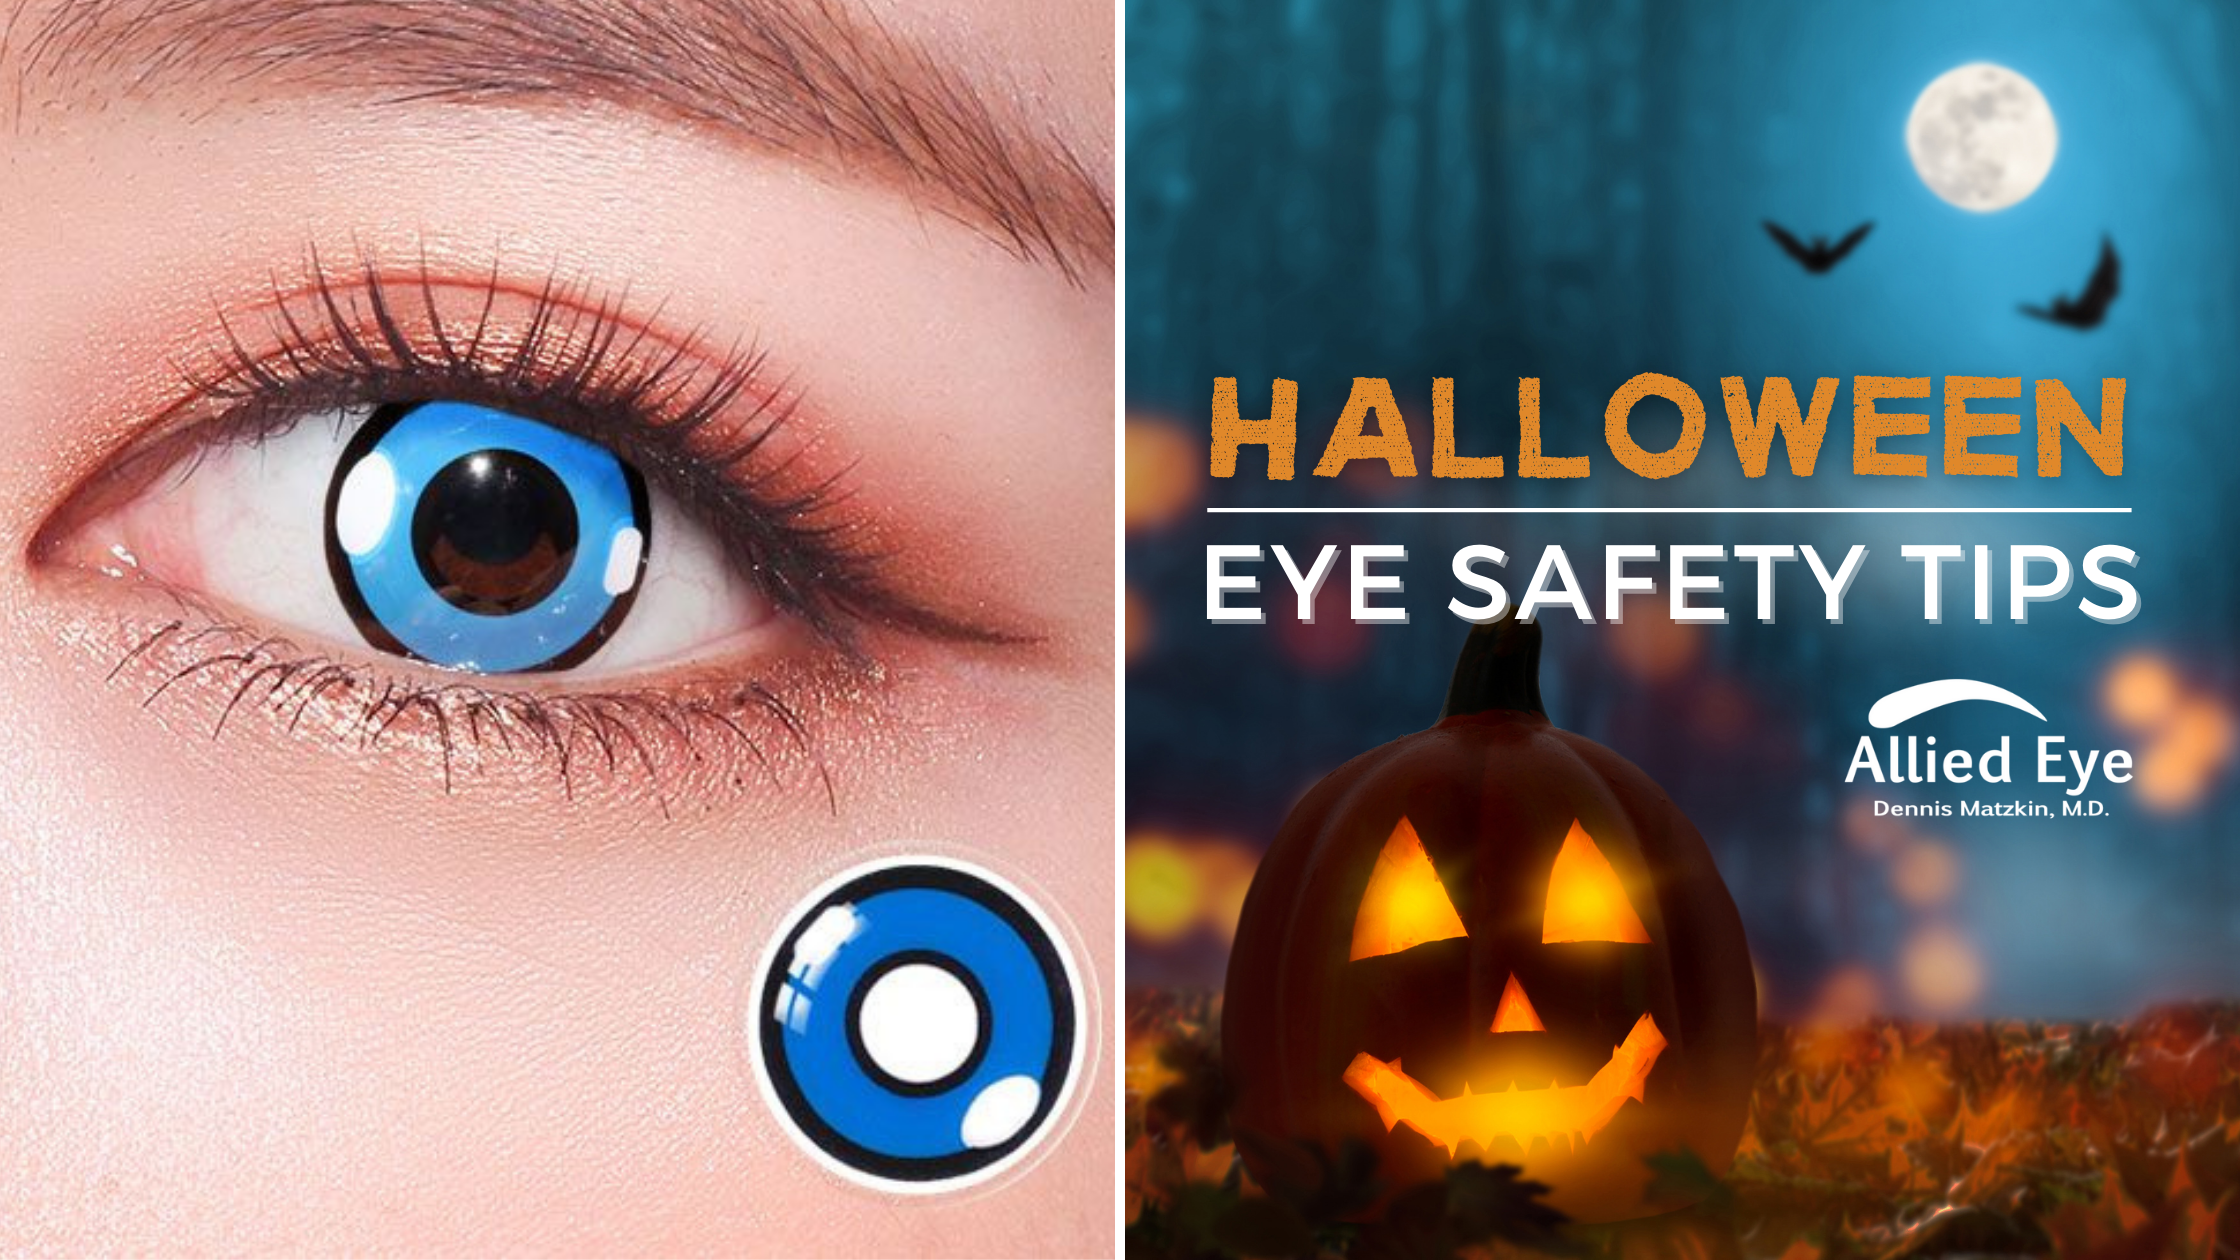 Eye Safety Tips Blog Graphic